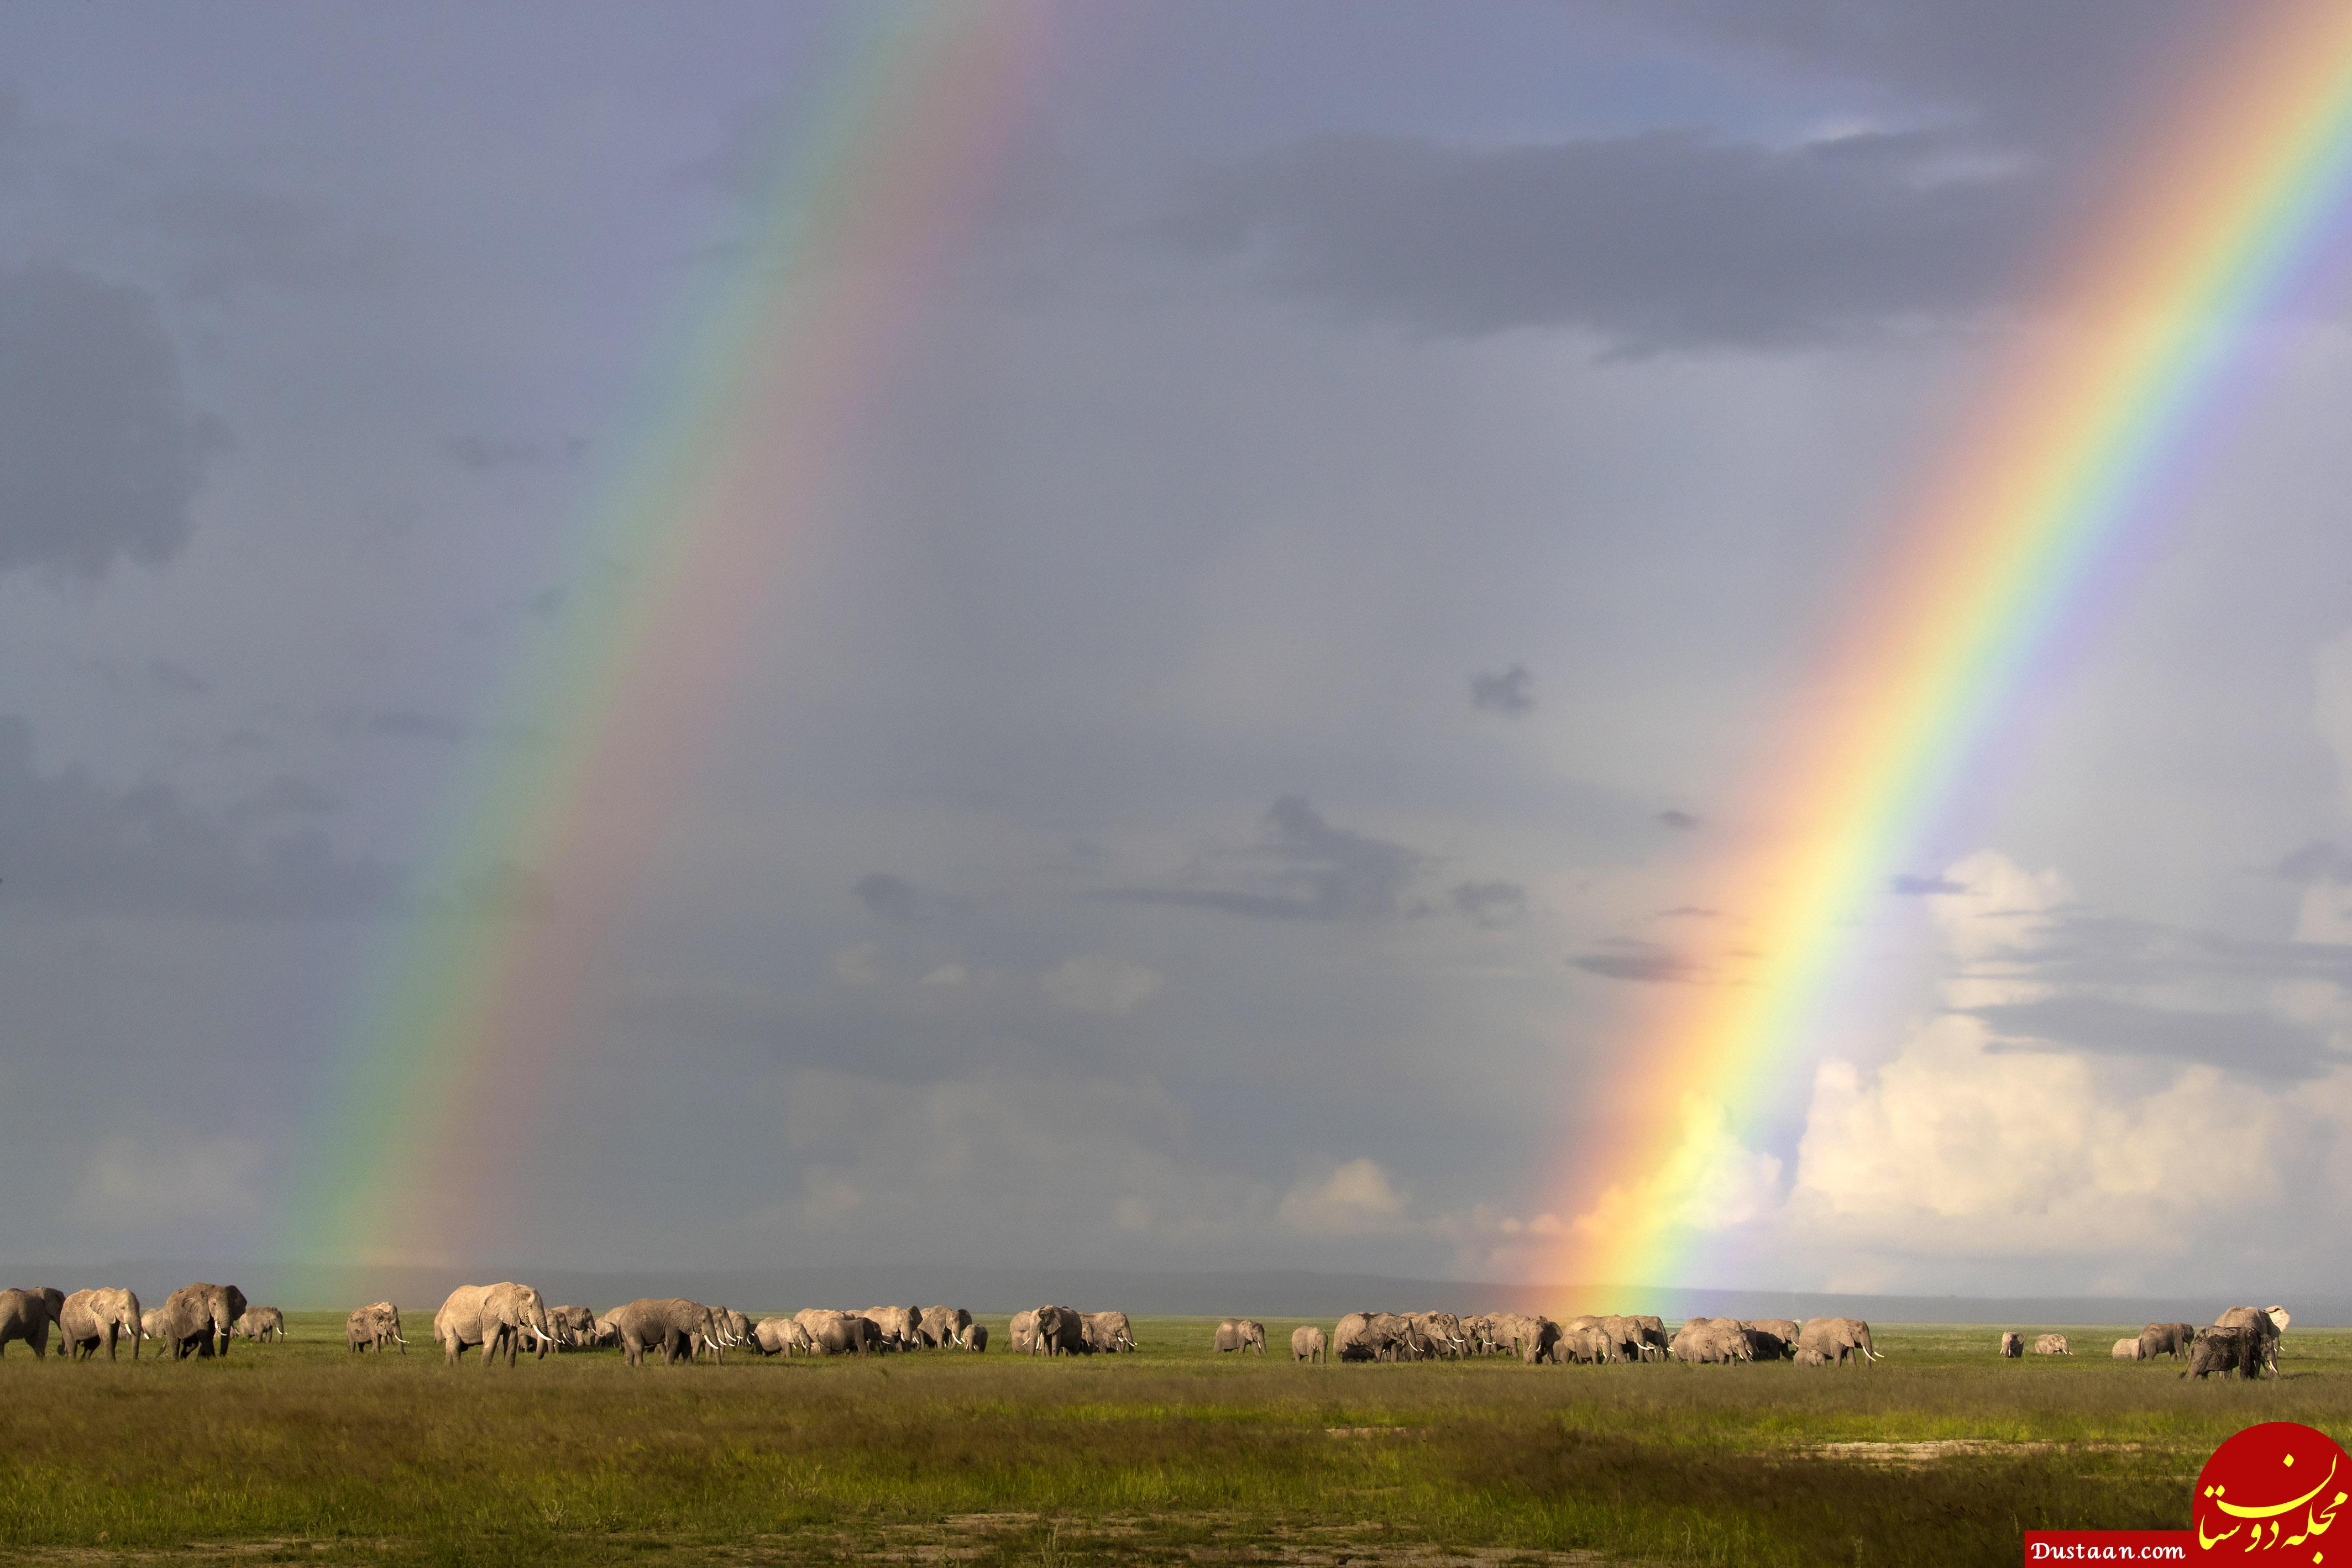 https://www.catersnews.com/wp-content/uploads/2018/07/1_CATERS_elephants_and_rainbows_002.jpg